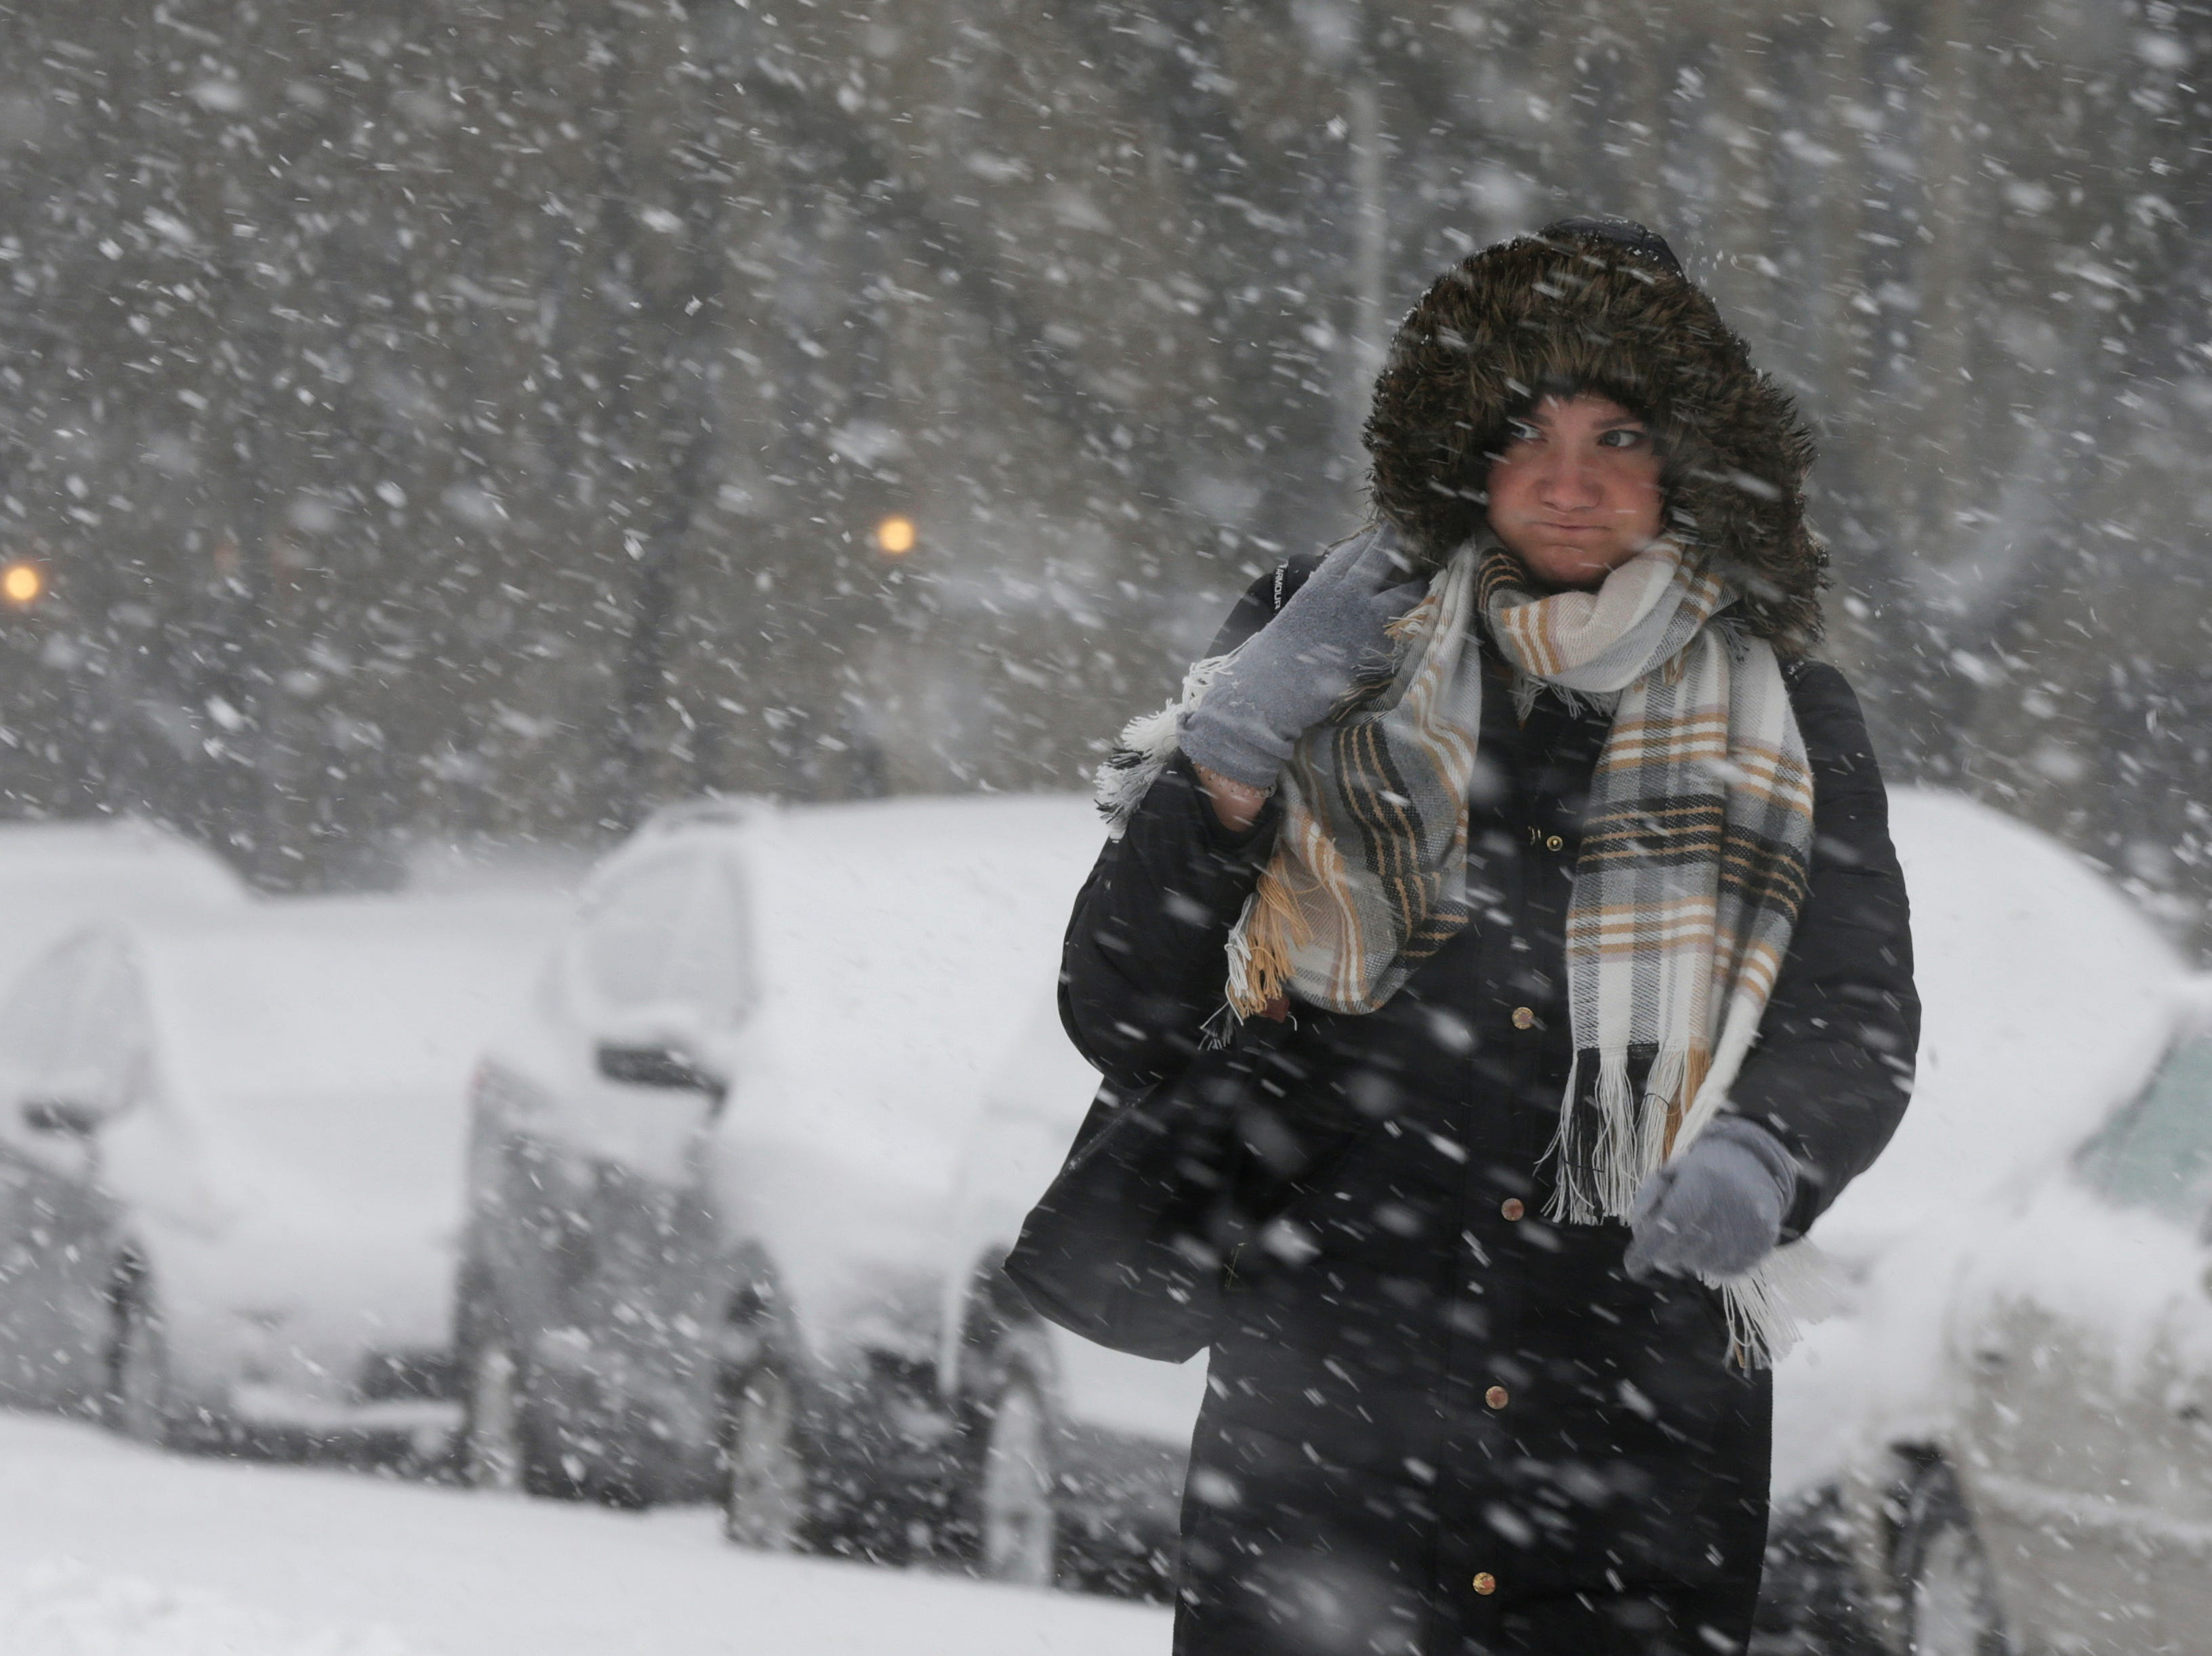 A commuter walks to a bus stop as snow falls, Monday, Nov. 26, 2018, in Chicago. A wintry storm brought blizzard-like conditions to parts of the Midwest early Monday, grounding hundreds of flights and causing some road traffic chaos as commuters returned to work after the Thanksgiving weekend.